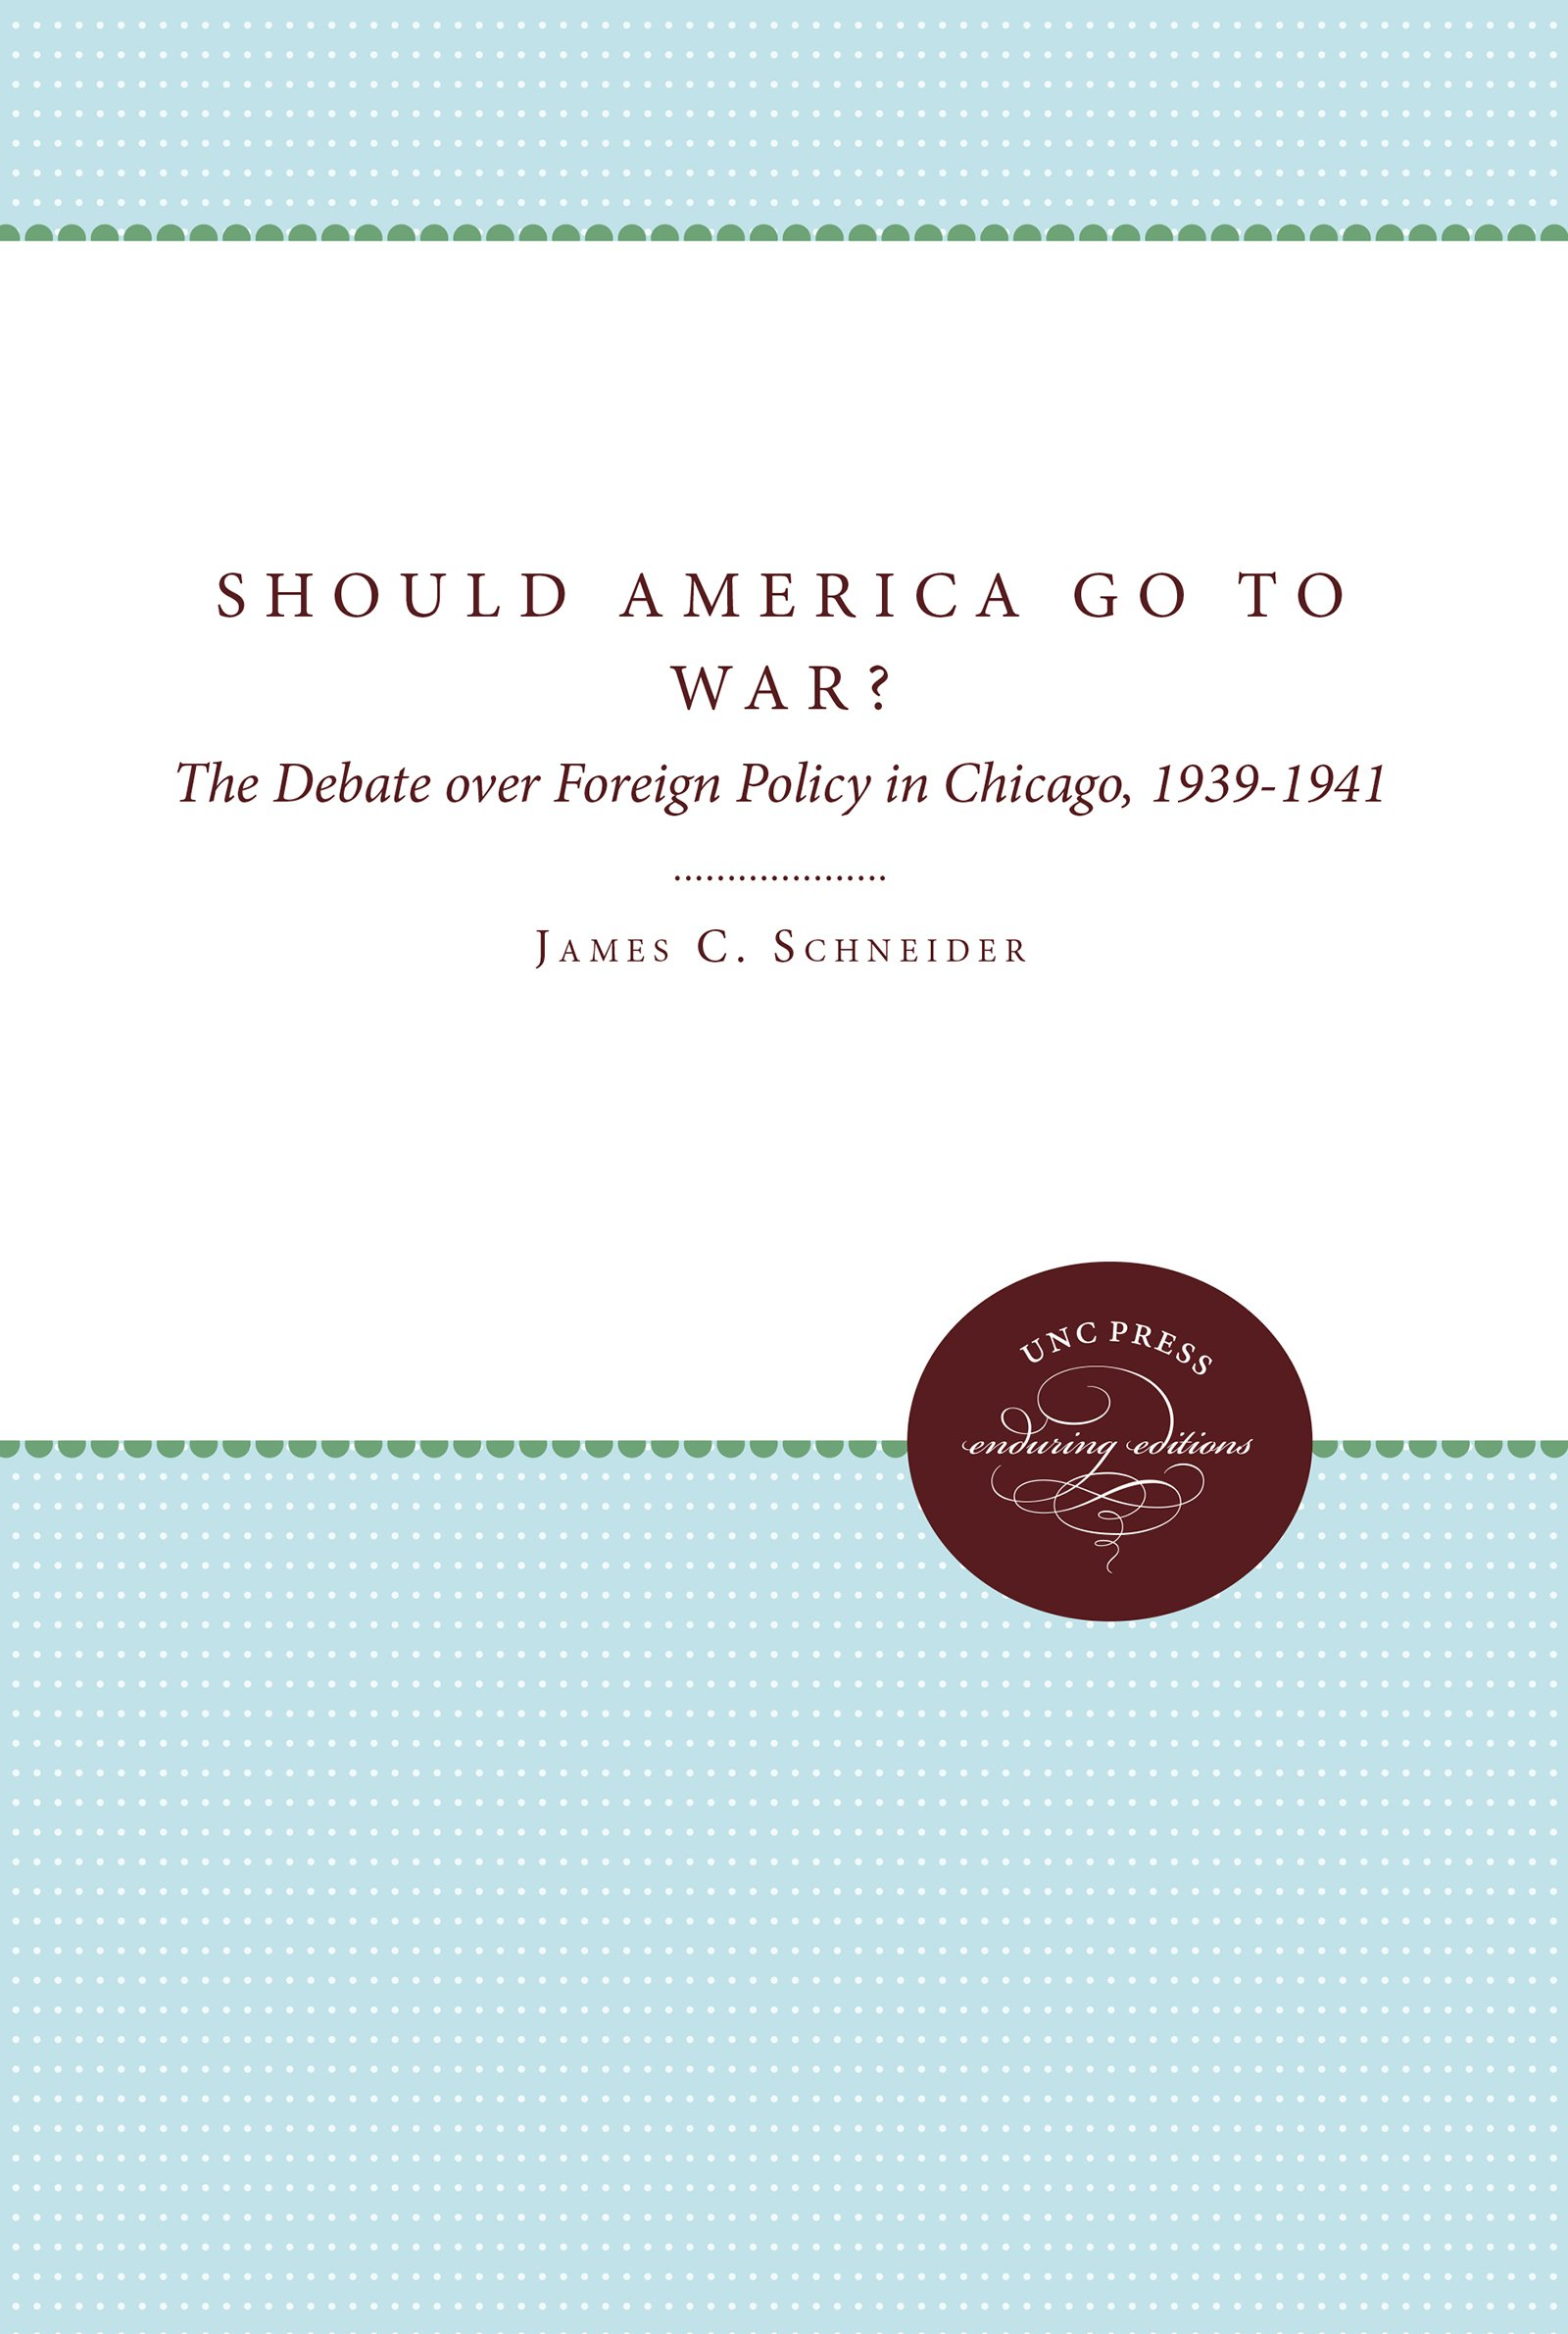 Should America Go To War?: The Debate over Foreign Policy in Chicago, 1939-1941 pdf